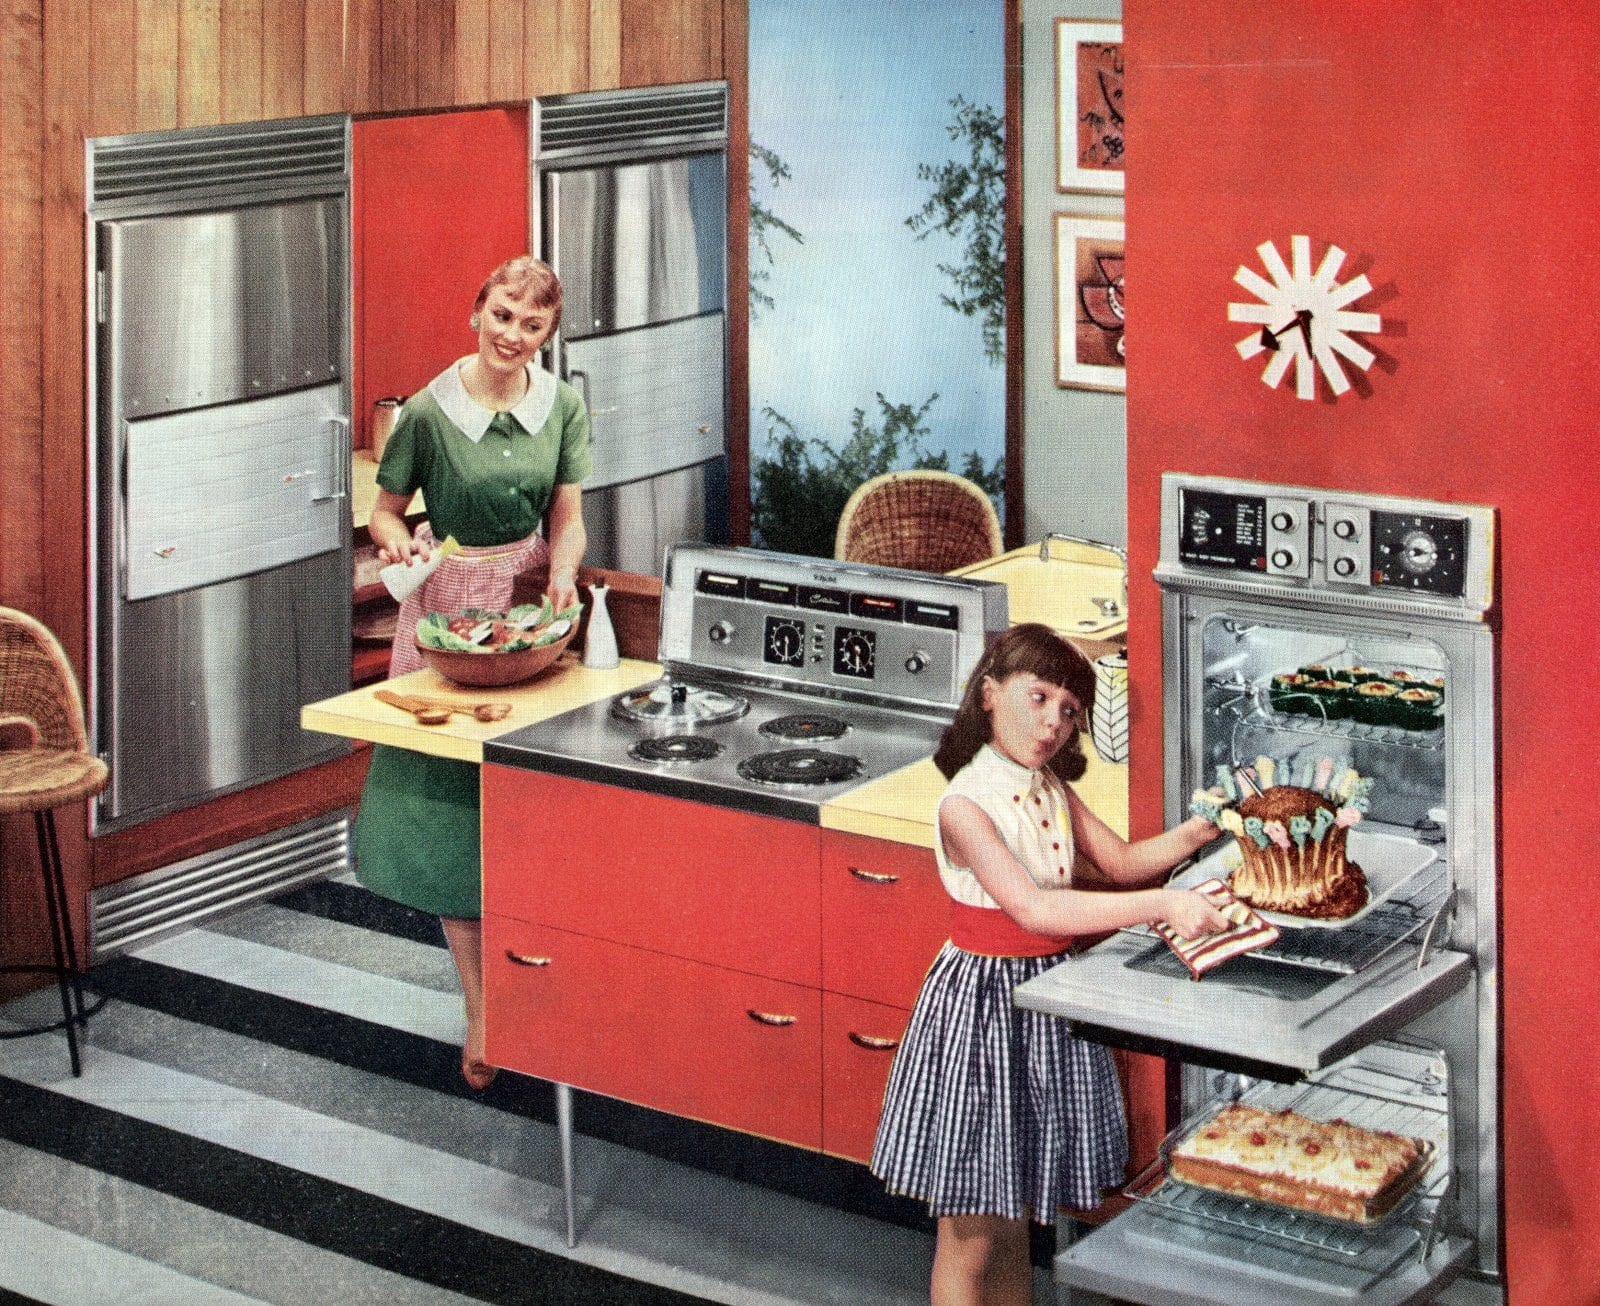 Red kitchen - Colorful vintage 1950s home decor